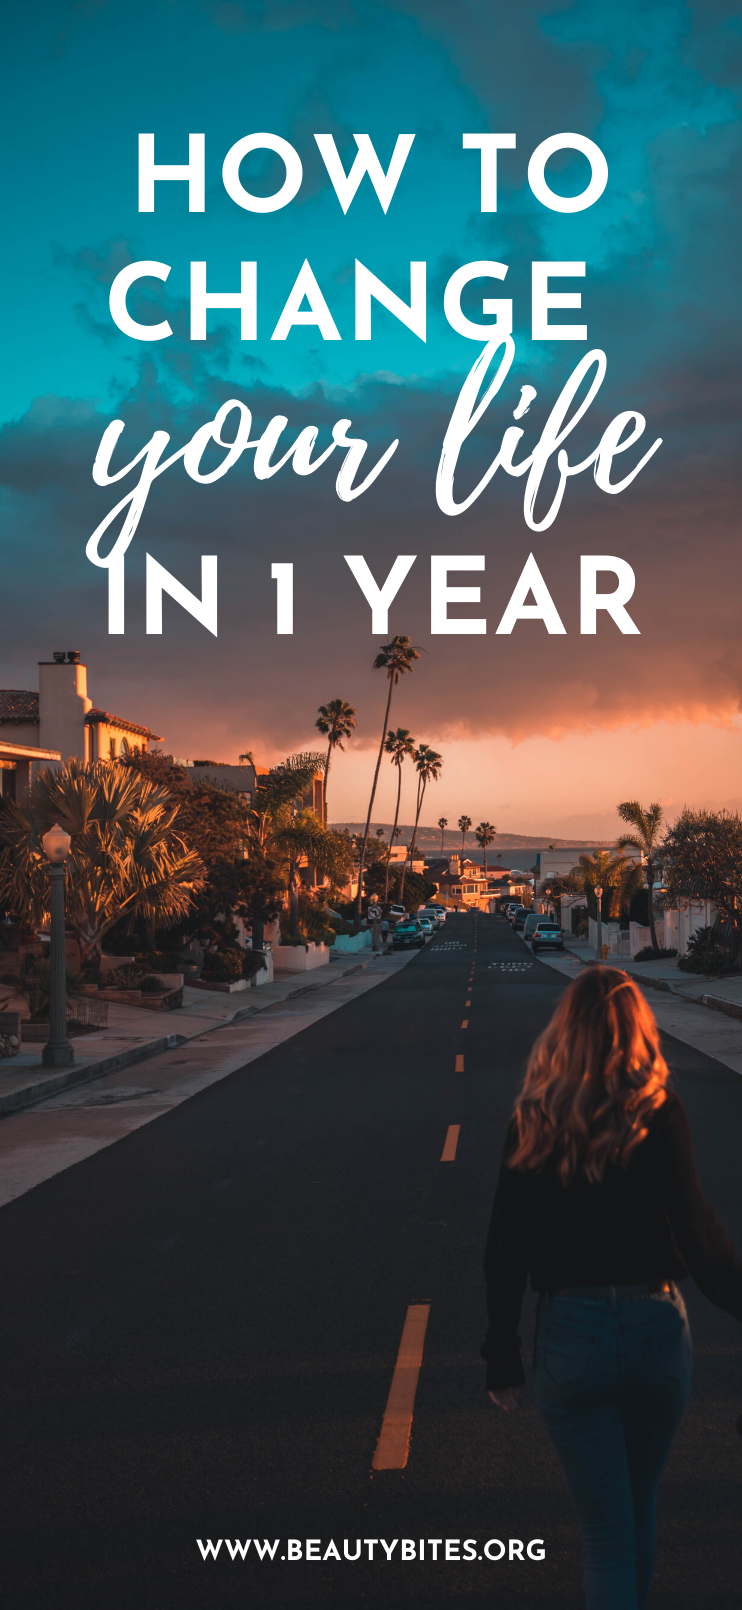 How to change your life in a year? 6 tips that have helped me develop the daily habits and routines that helped me change everything in my life - health and fitness, income, relationships...Achieve your goals and New Year's resolutions with these tips.